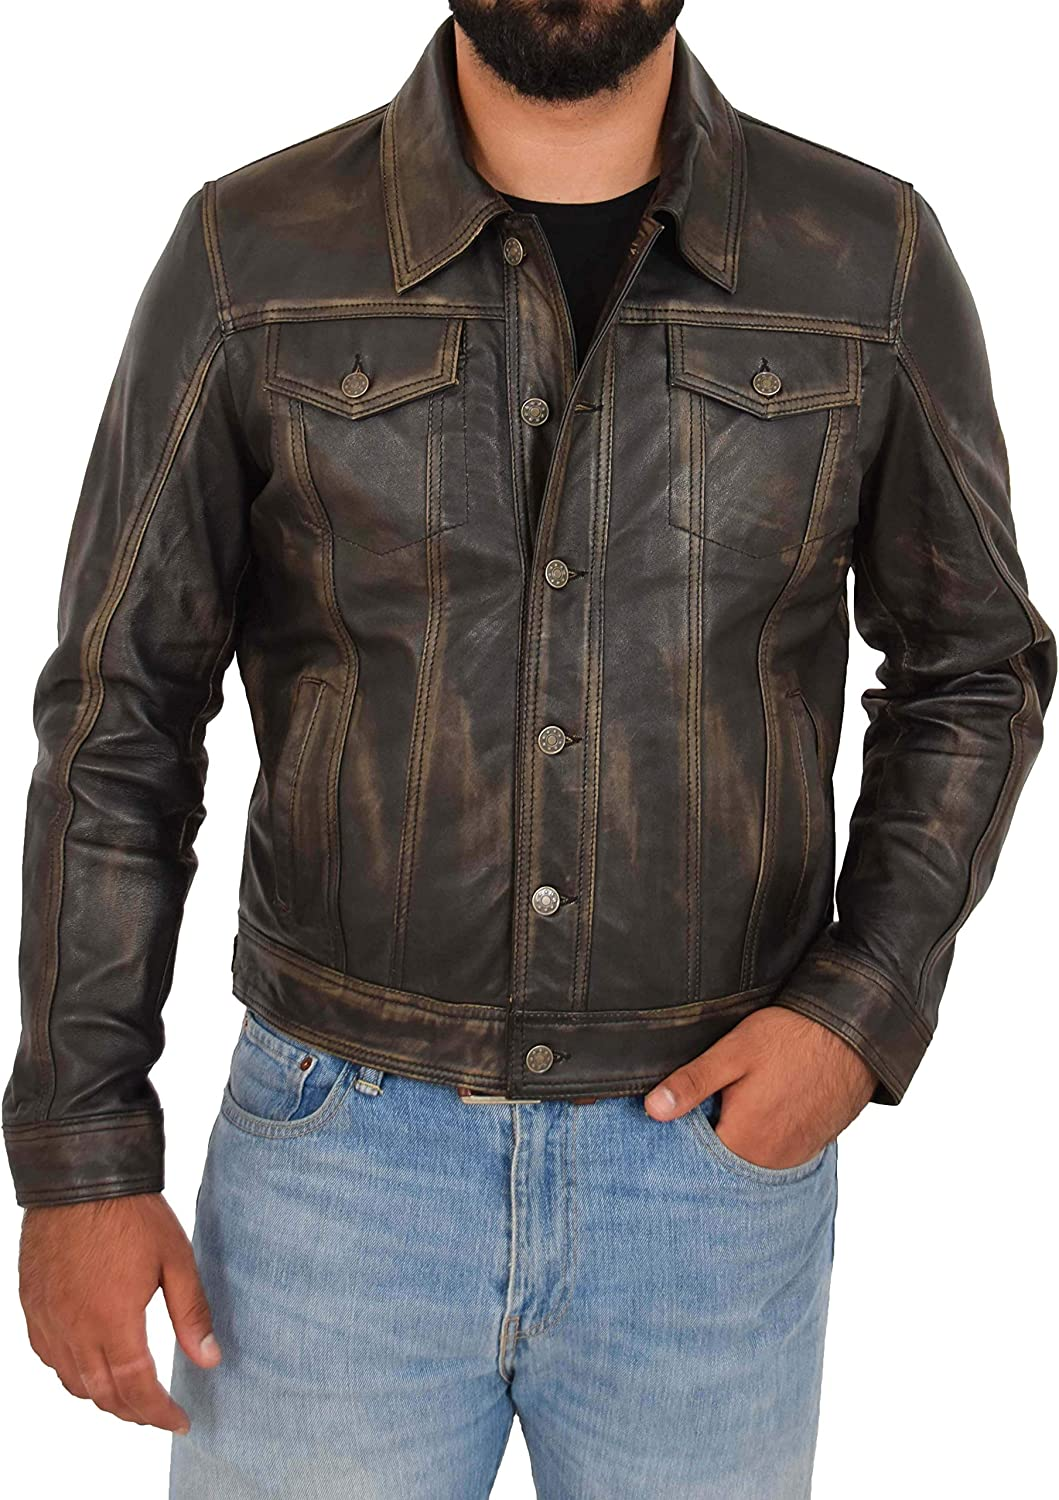 HOL Mens Leather Trucker Jacket Slim Fit Authentic 501 Style Terry Black Two Tone